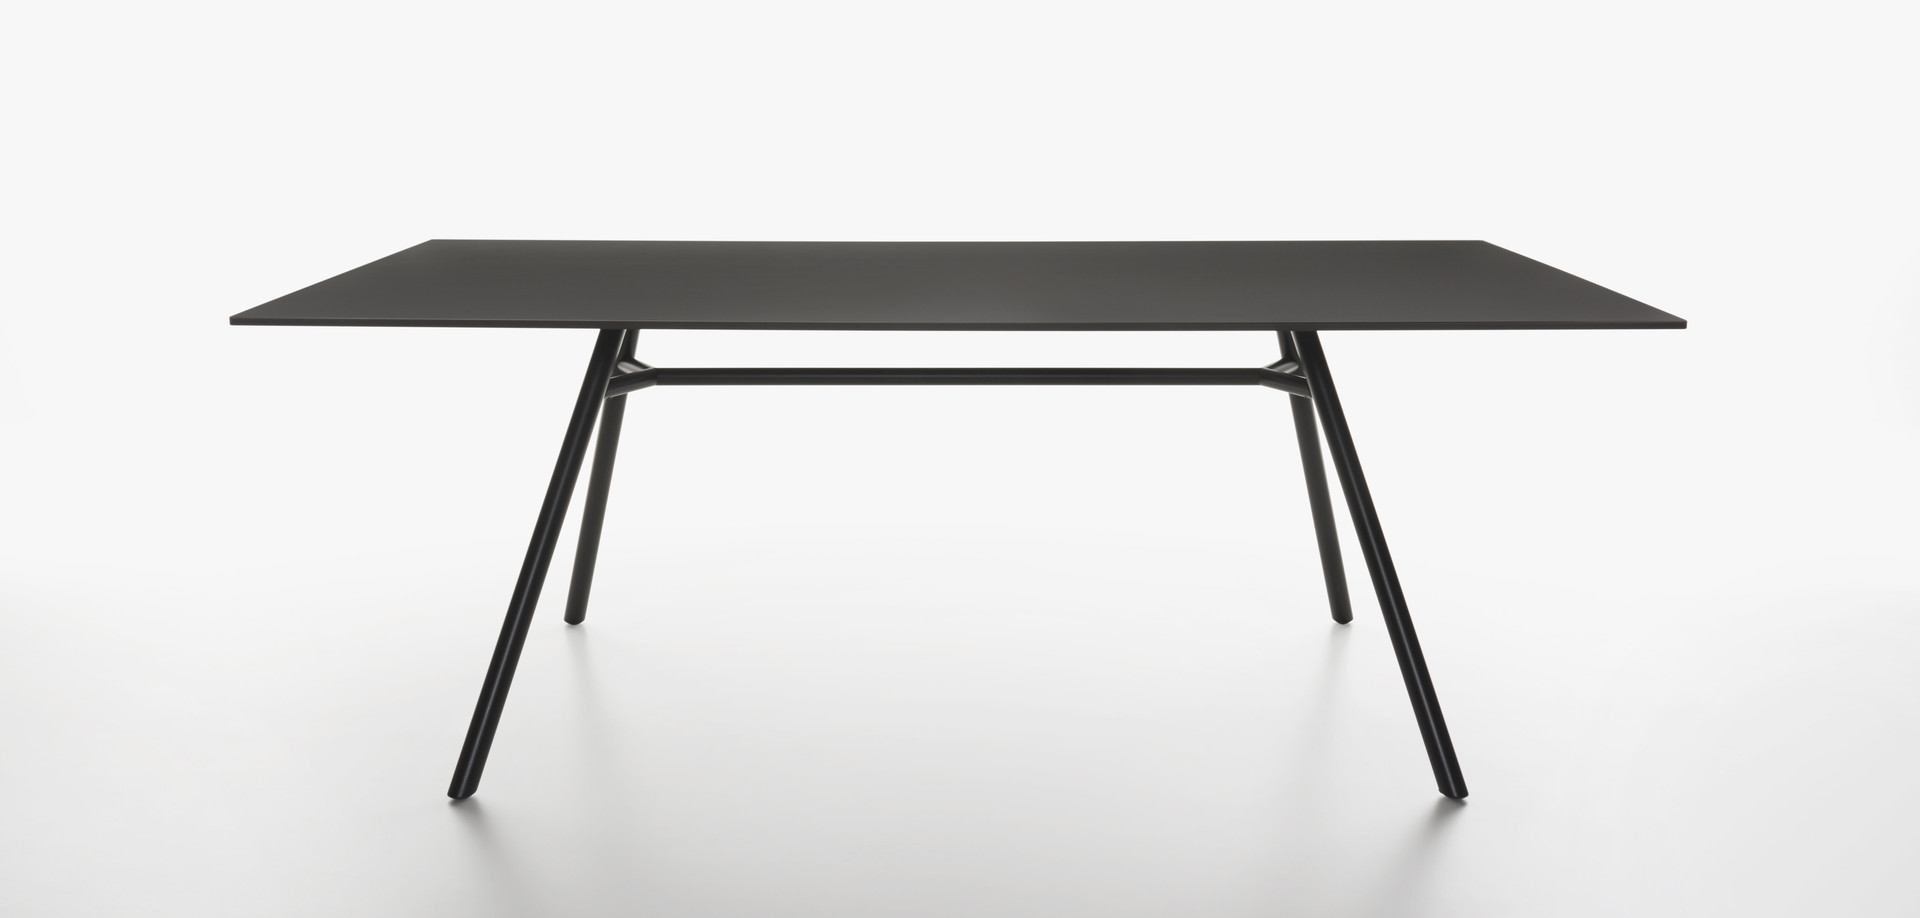 Plank - MART table, rectangular table top, black aluminum legs, black HPL top